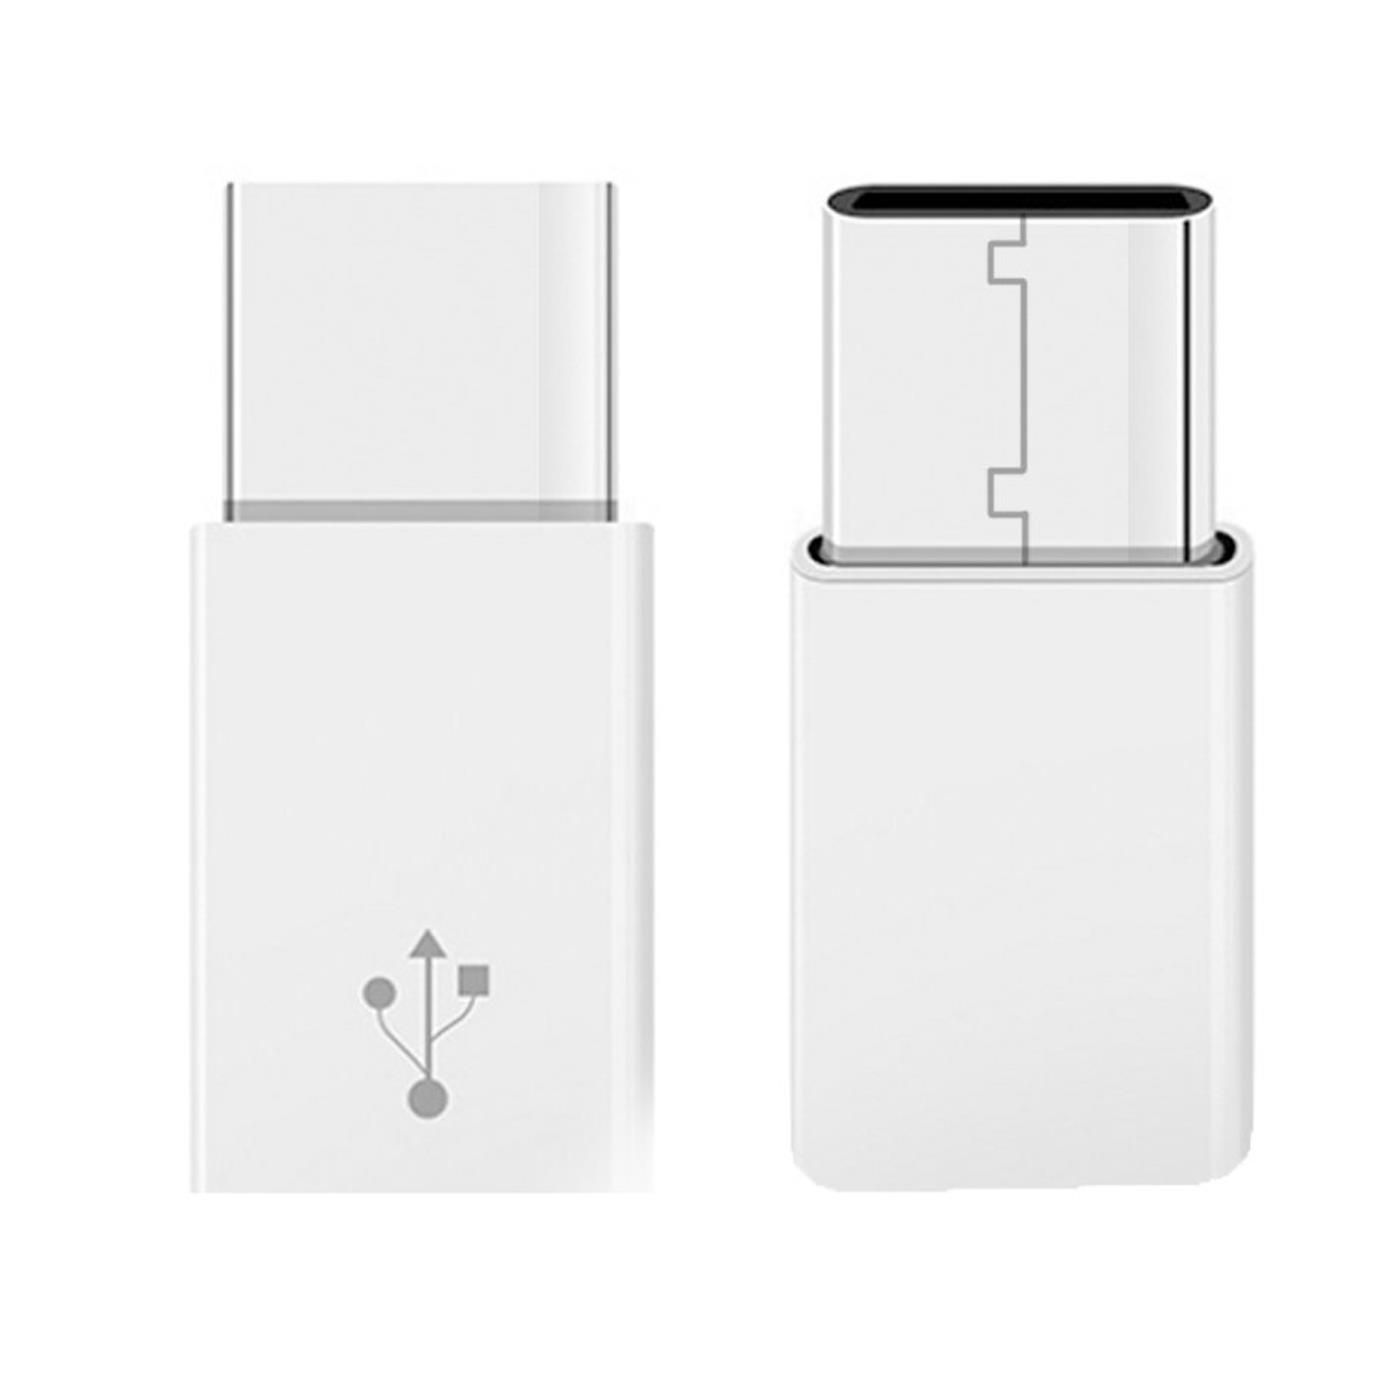 2x USB Typ C Stecker auf Micro USB Buchse Lade Kabel Adapter Android WEISS 4